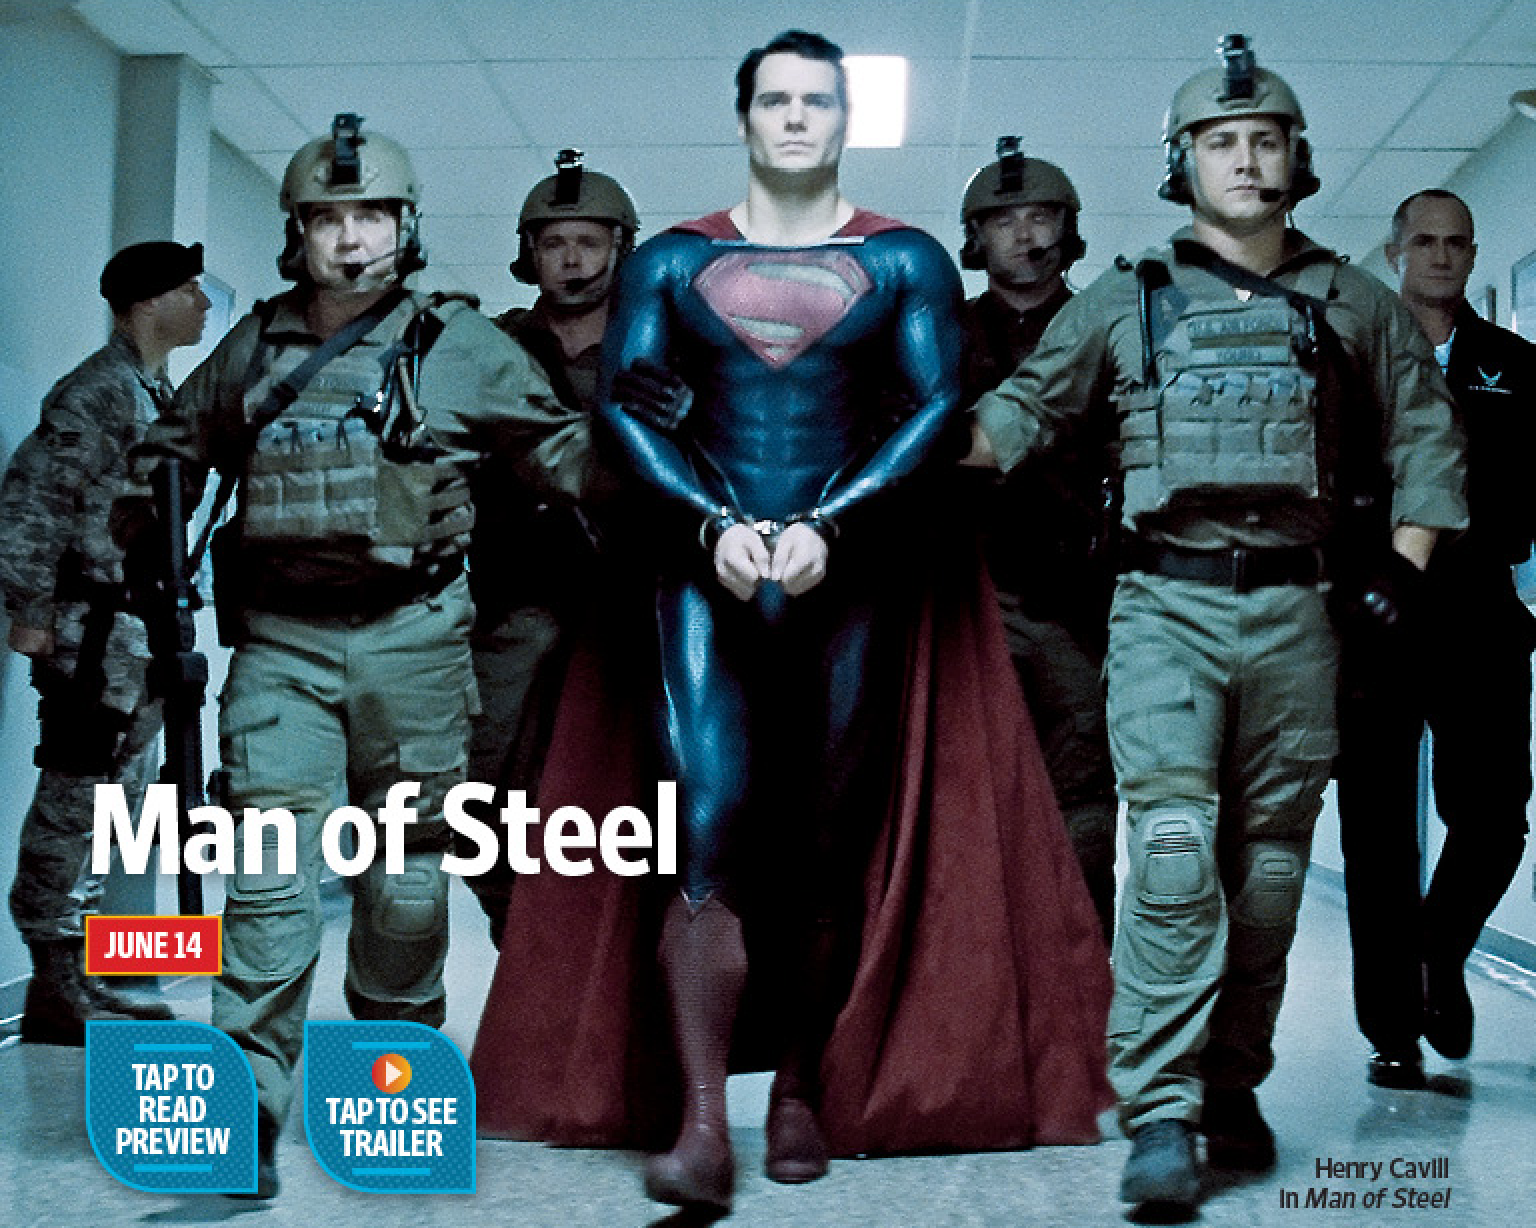 http://www.mazika4way.com/2013/10/Man-of-Steel.html